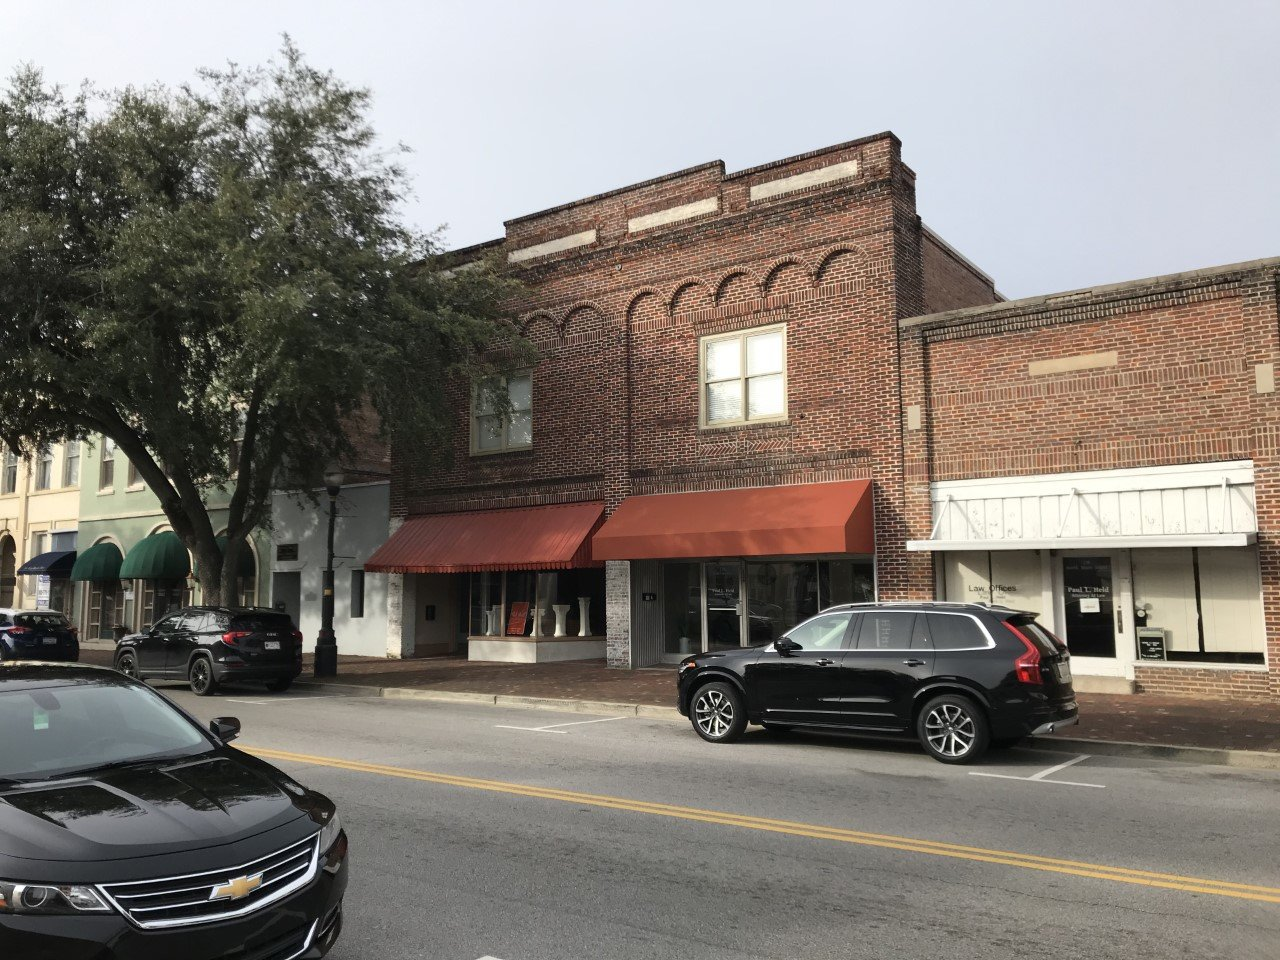 The front of the Sumter Printing Co. building is seen after renovations.